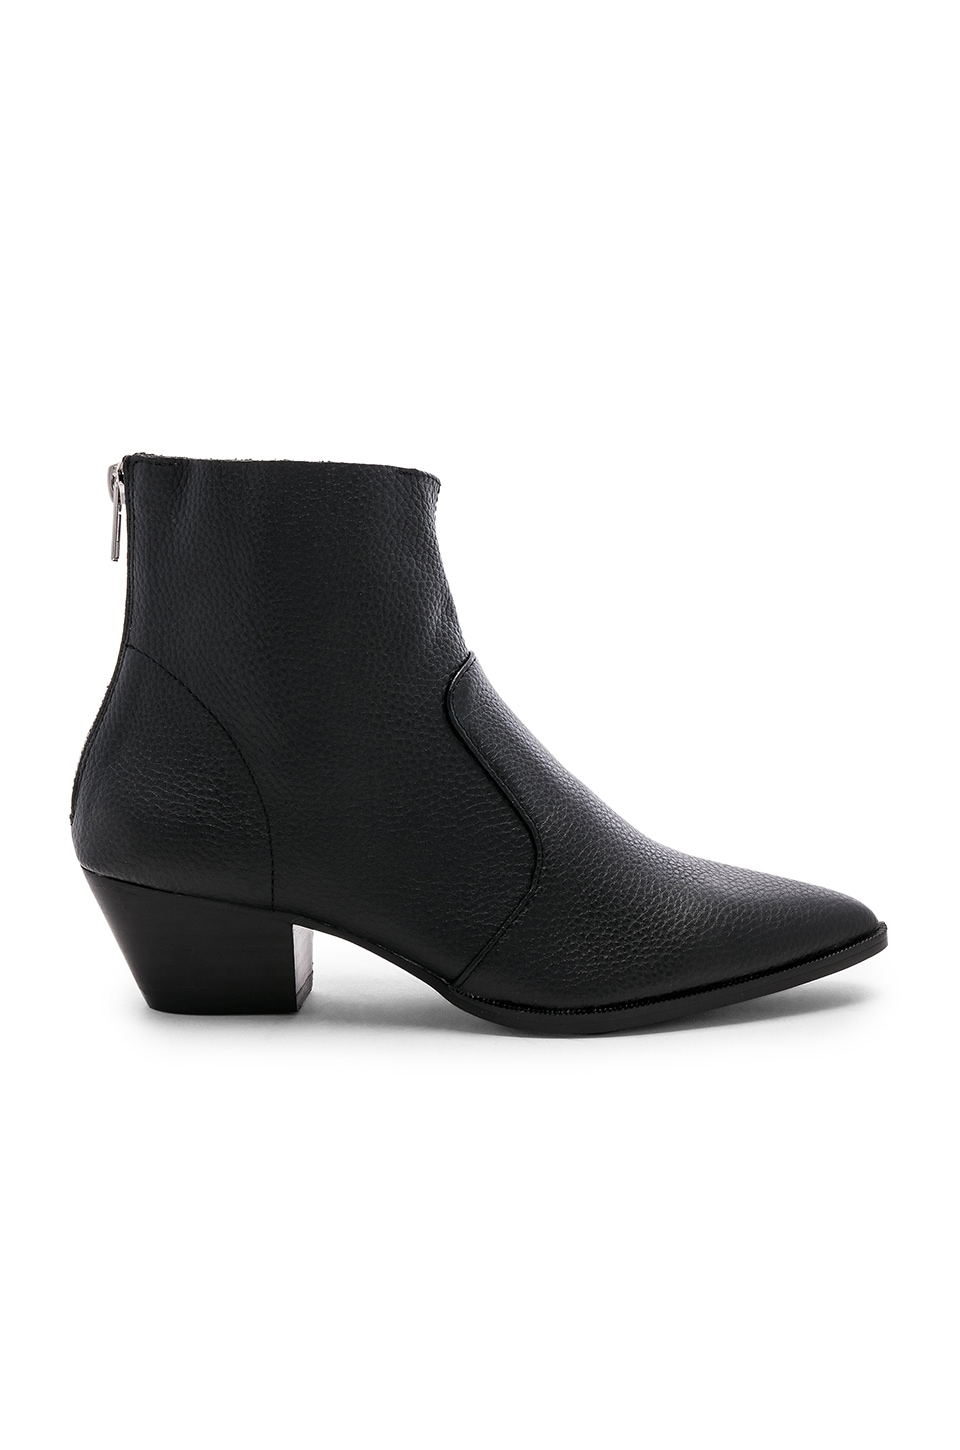 Steve Madden Cafe Bootie in Black